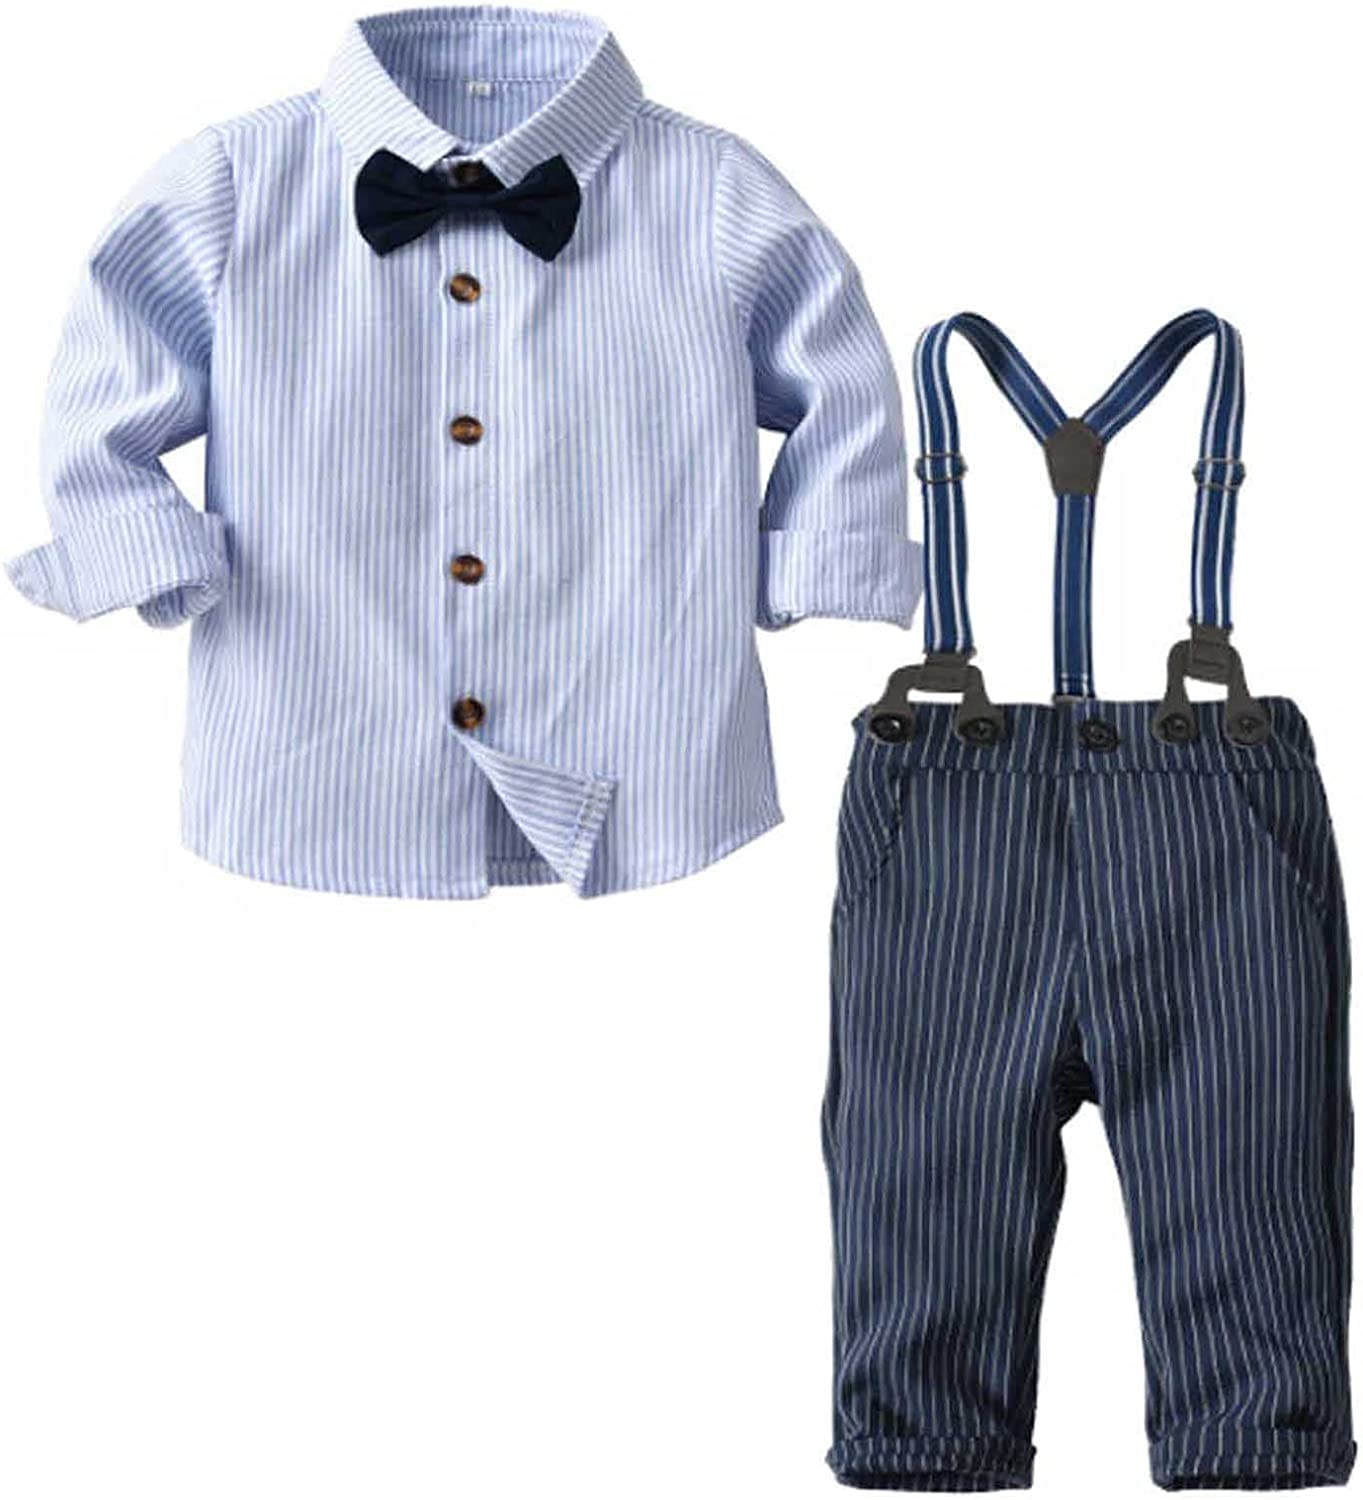 2Piece Toddler Brand new Baby Boys Gentleman Outfits Bow S Long Tie Manufacturer direct delivery Suits